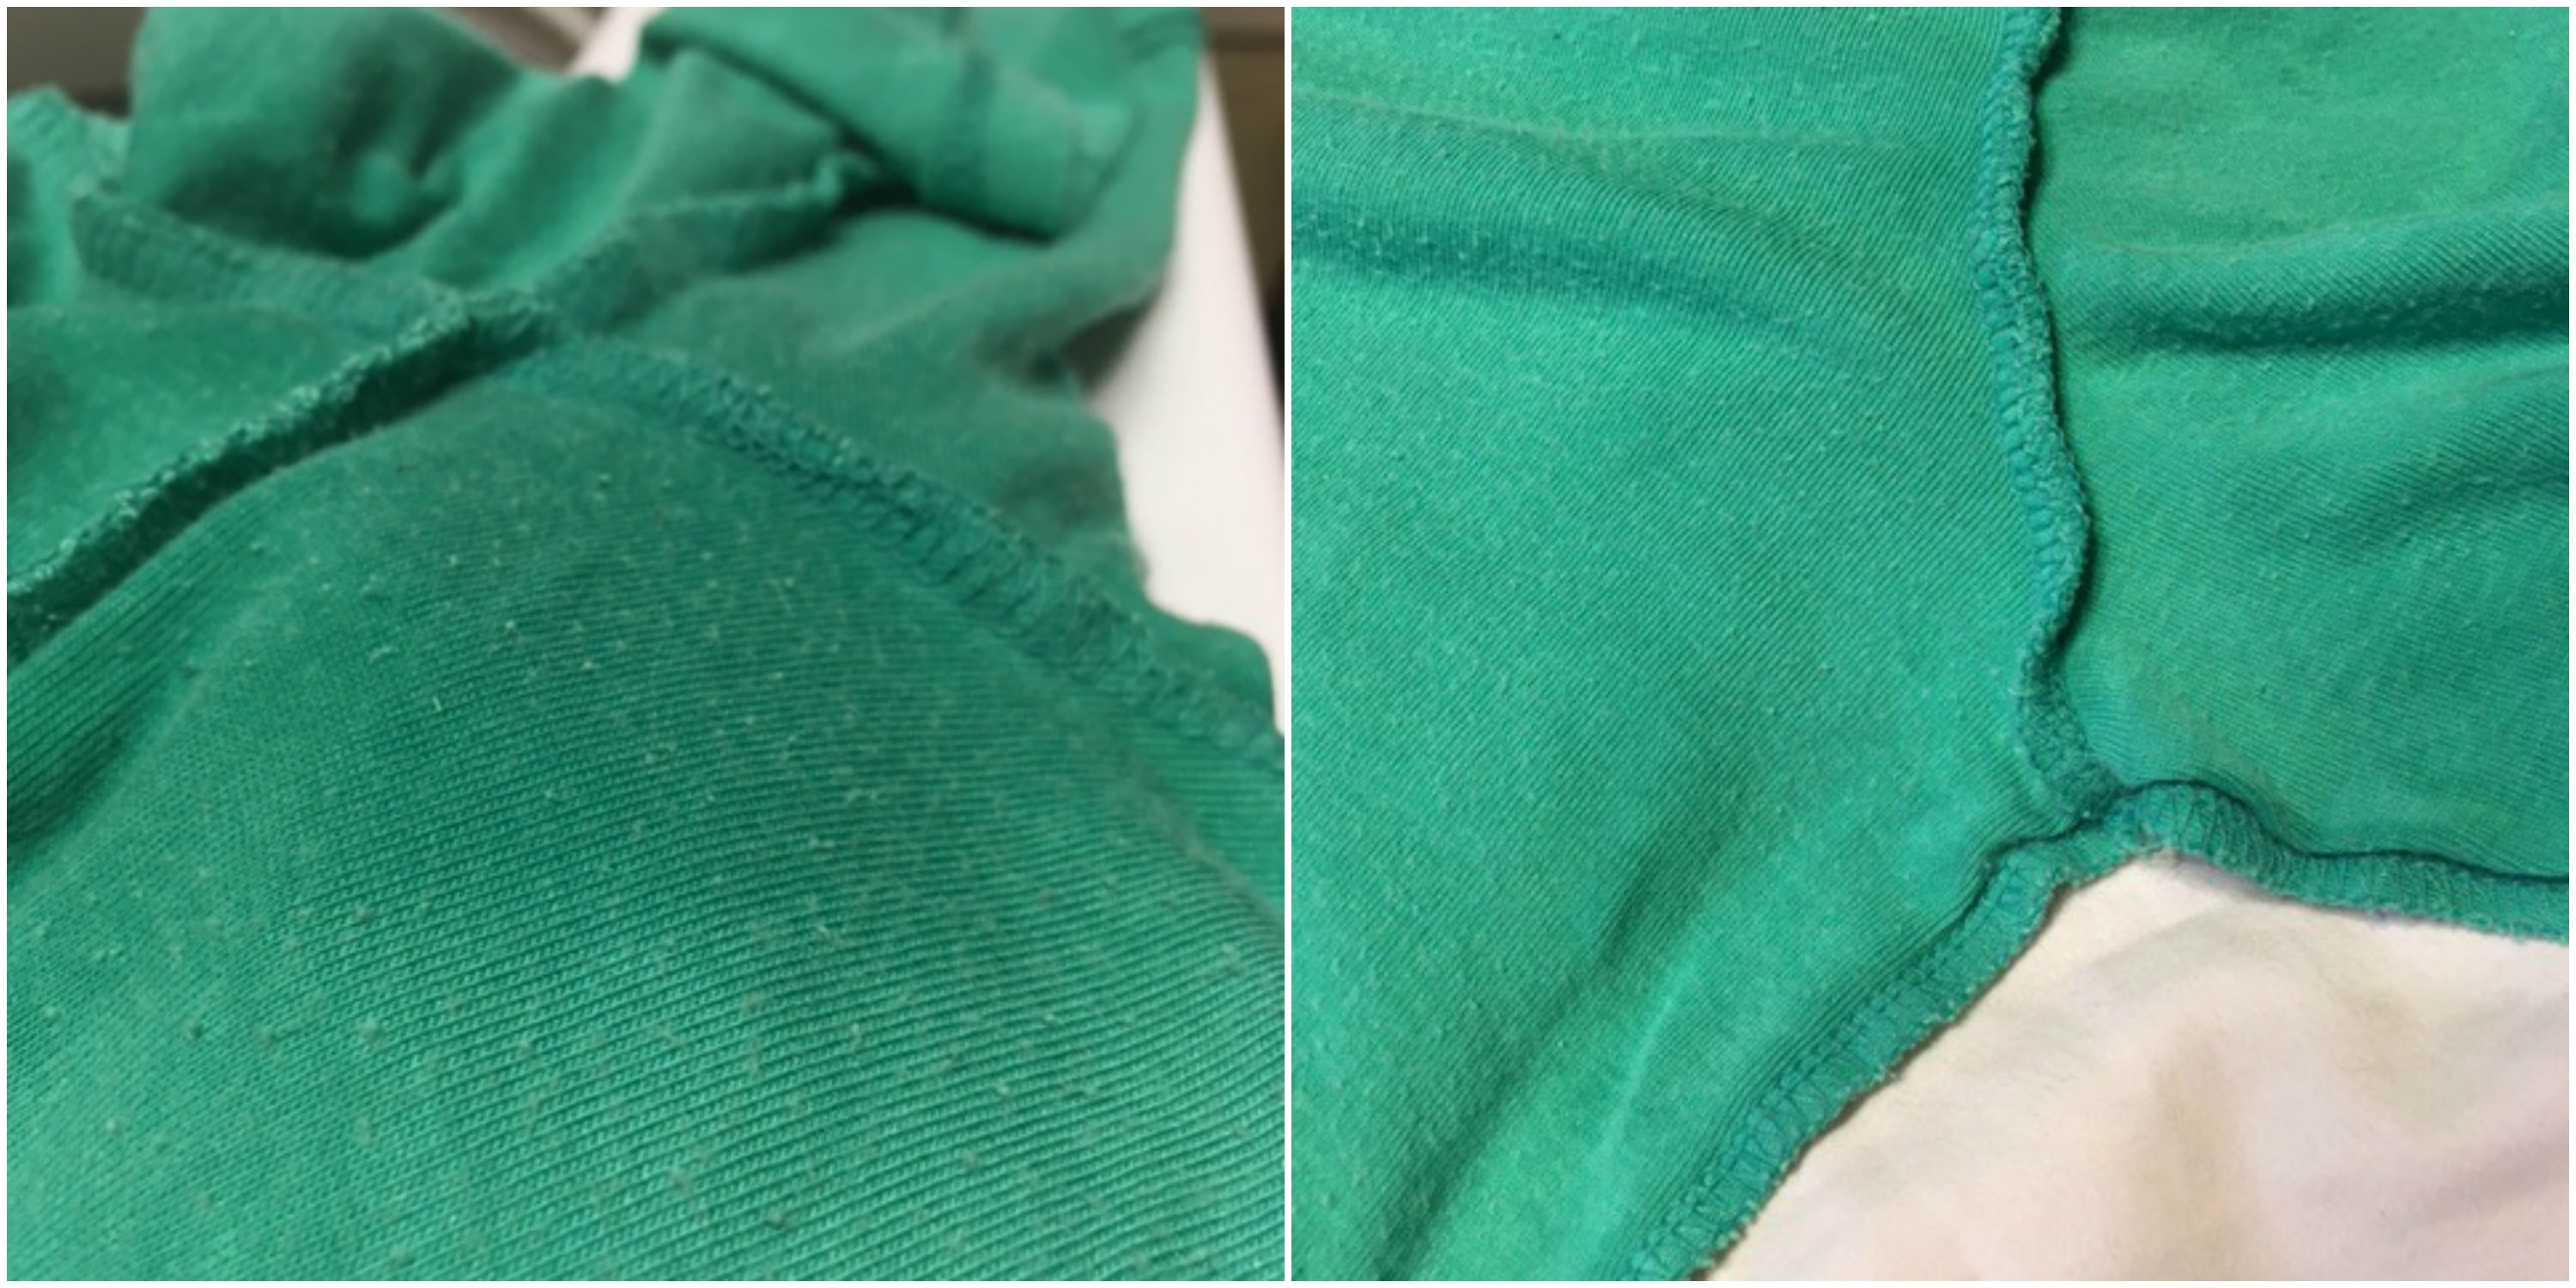 How to remove deodorant build up from dark clothes for Removing sweat stains from white shirts